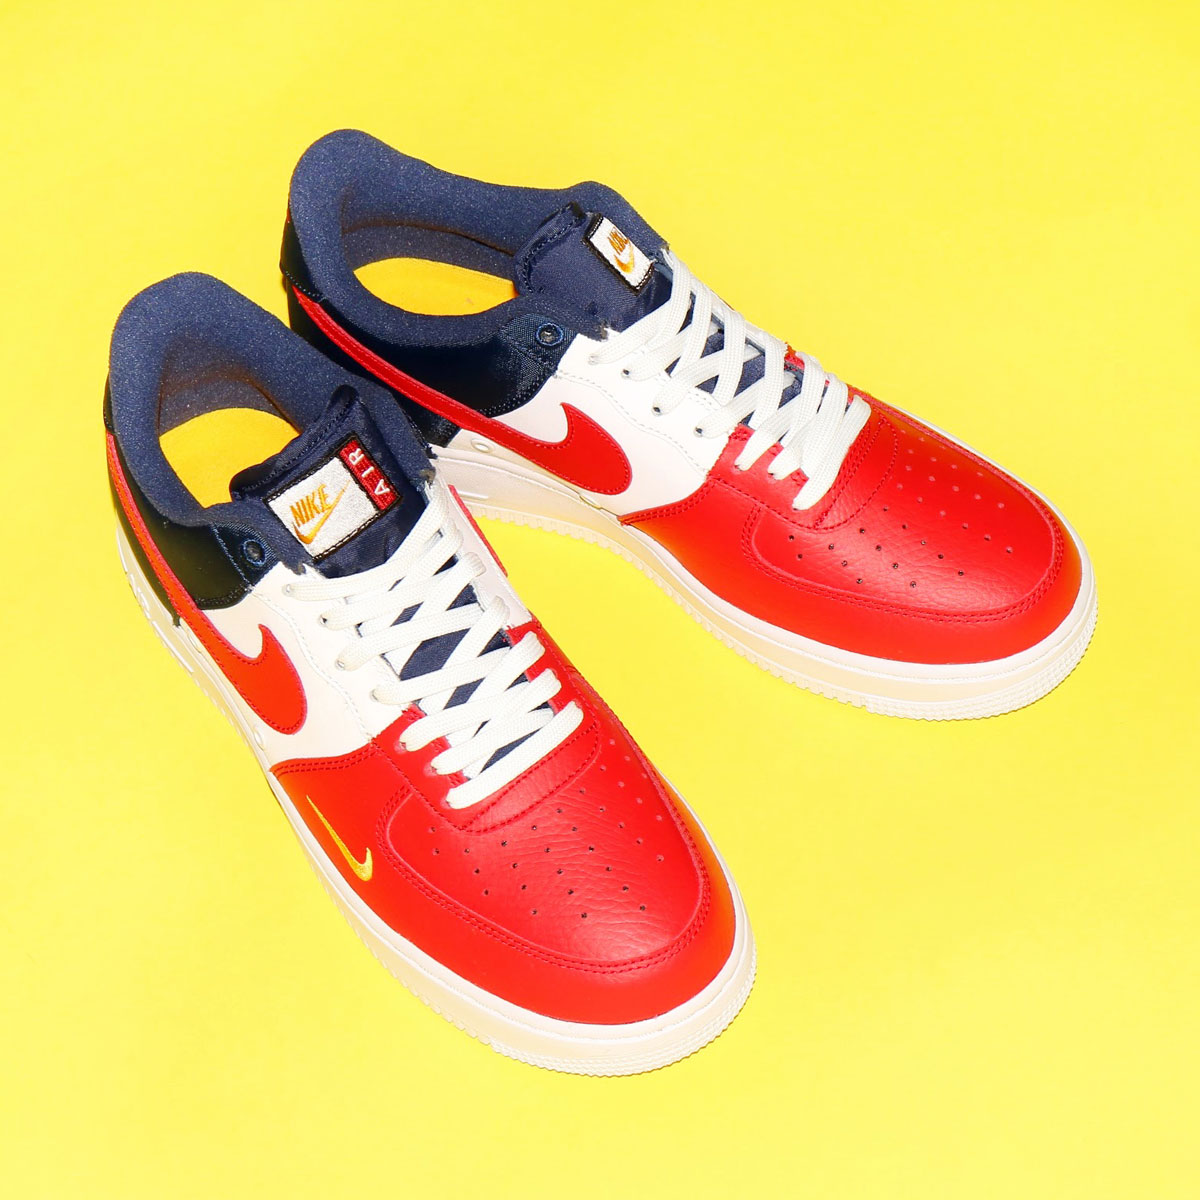 check out 4a315 28a2c The masterpiece of the Nike basketball released in 1982. The constant  seller model that continues still attracting a fan after time when a classic  ...